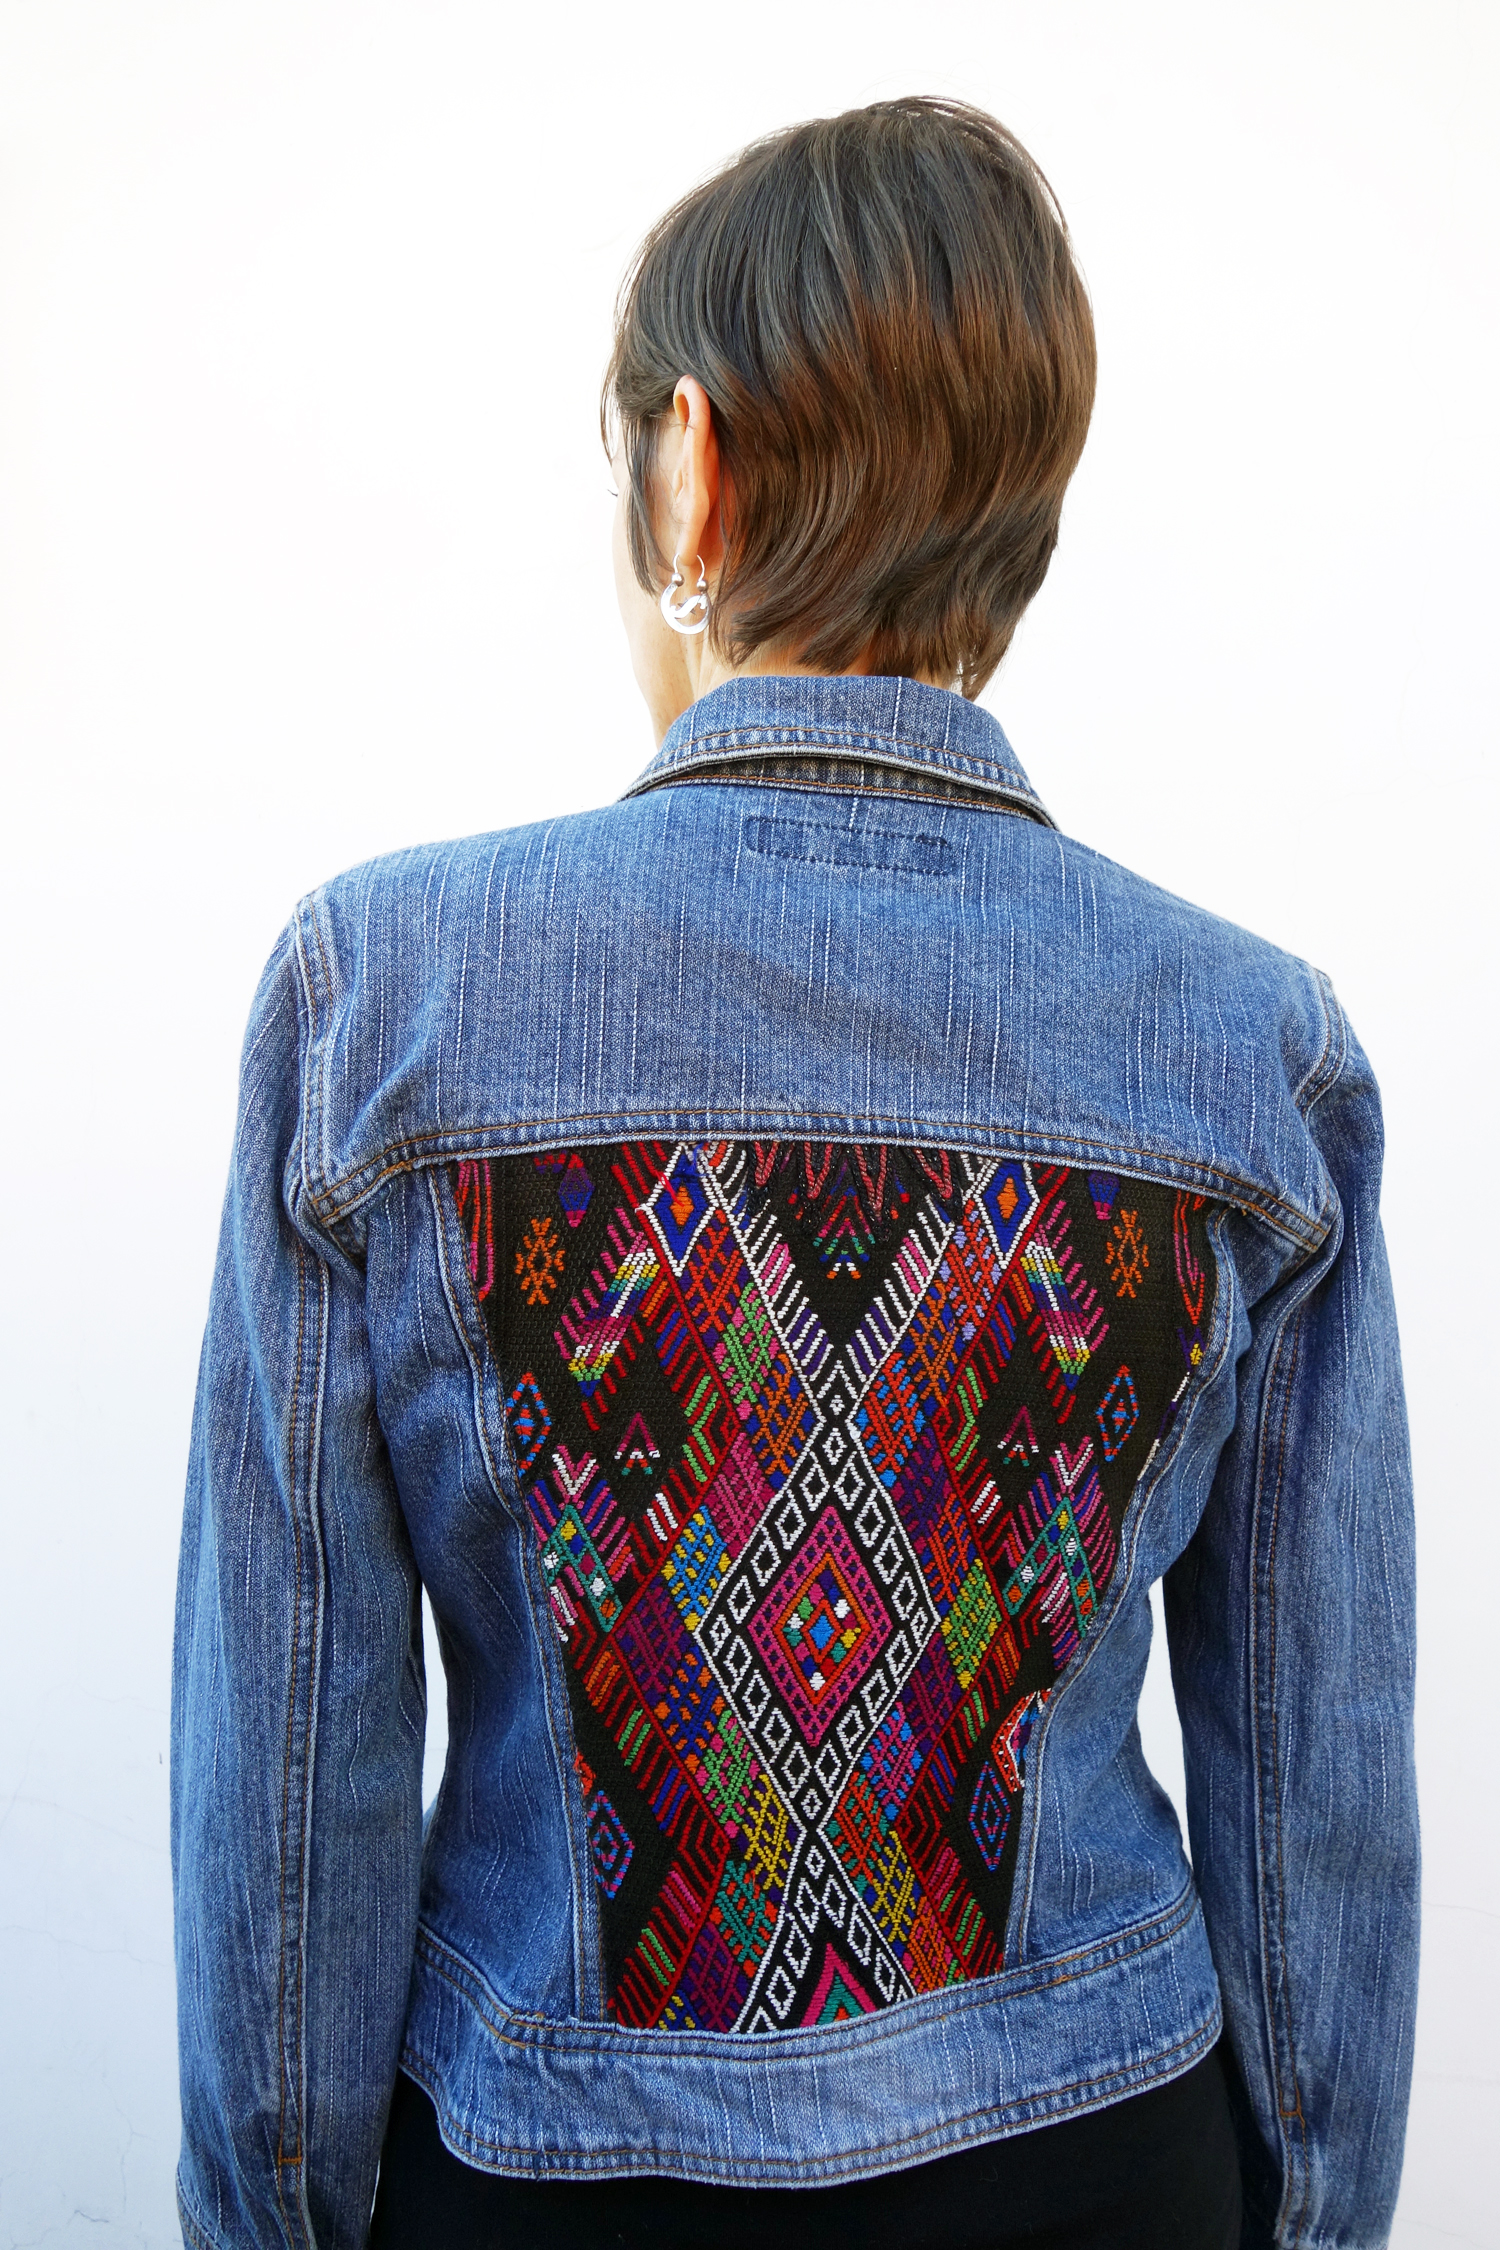 Coleccion Luna Denim jacket with vintage double headed eagle huipil textile